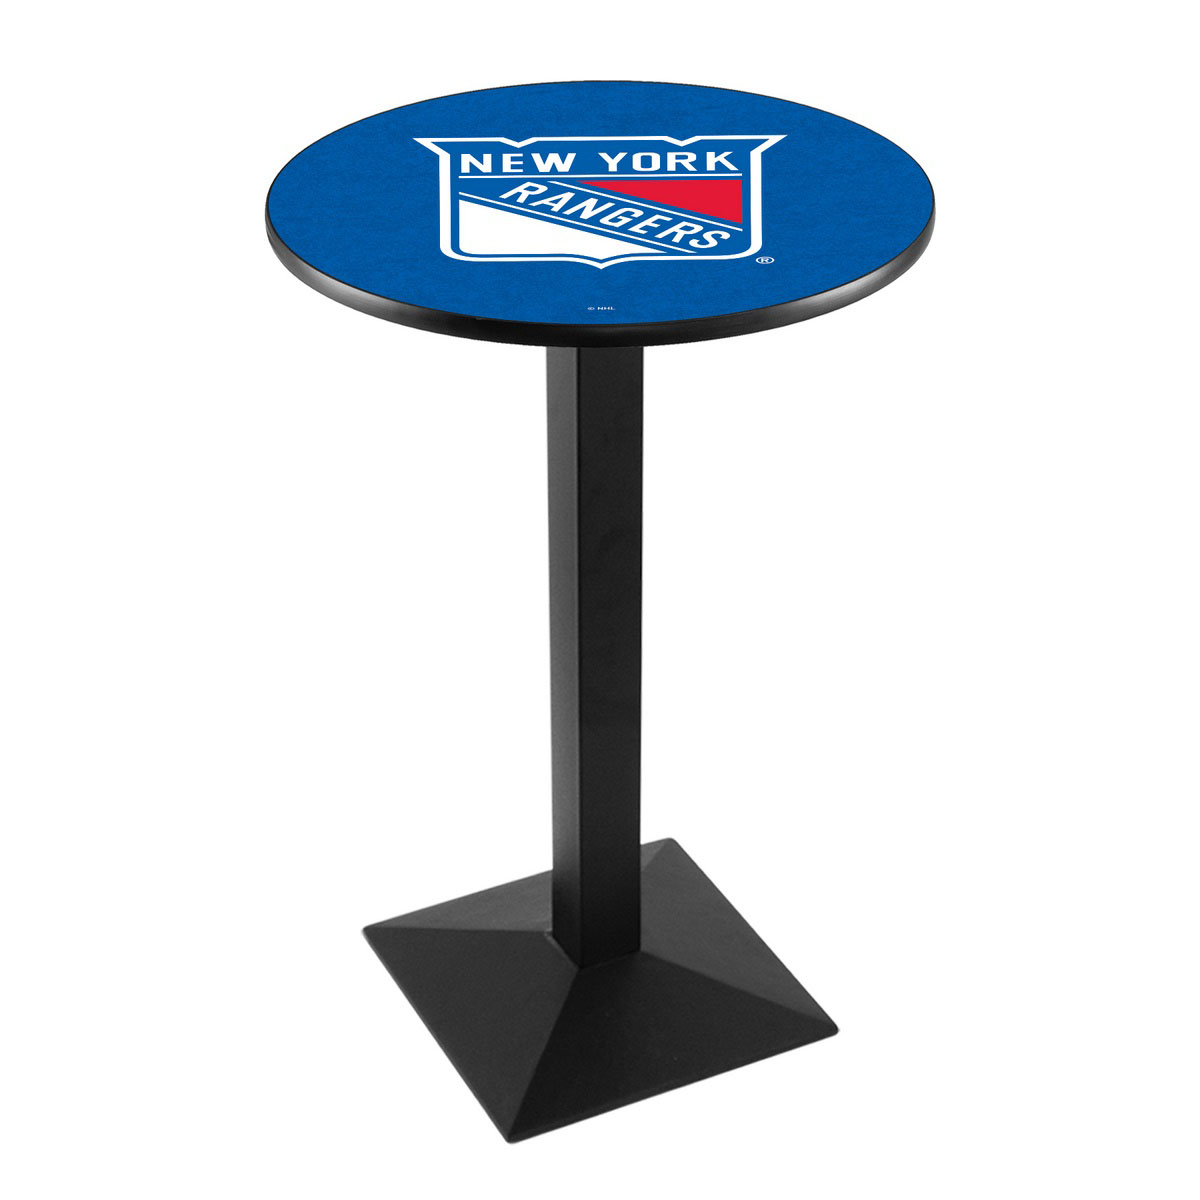 View New York Rangers Logo Pub Bar Table Square Stand Product Photo